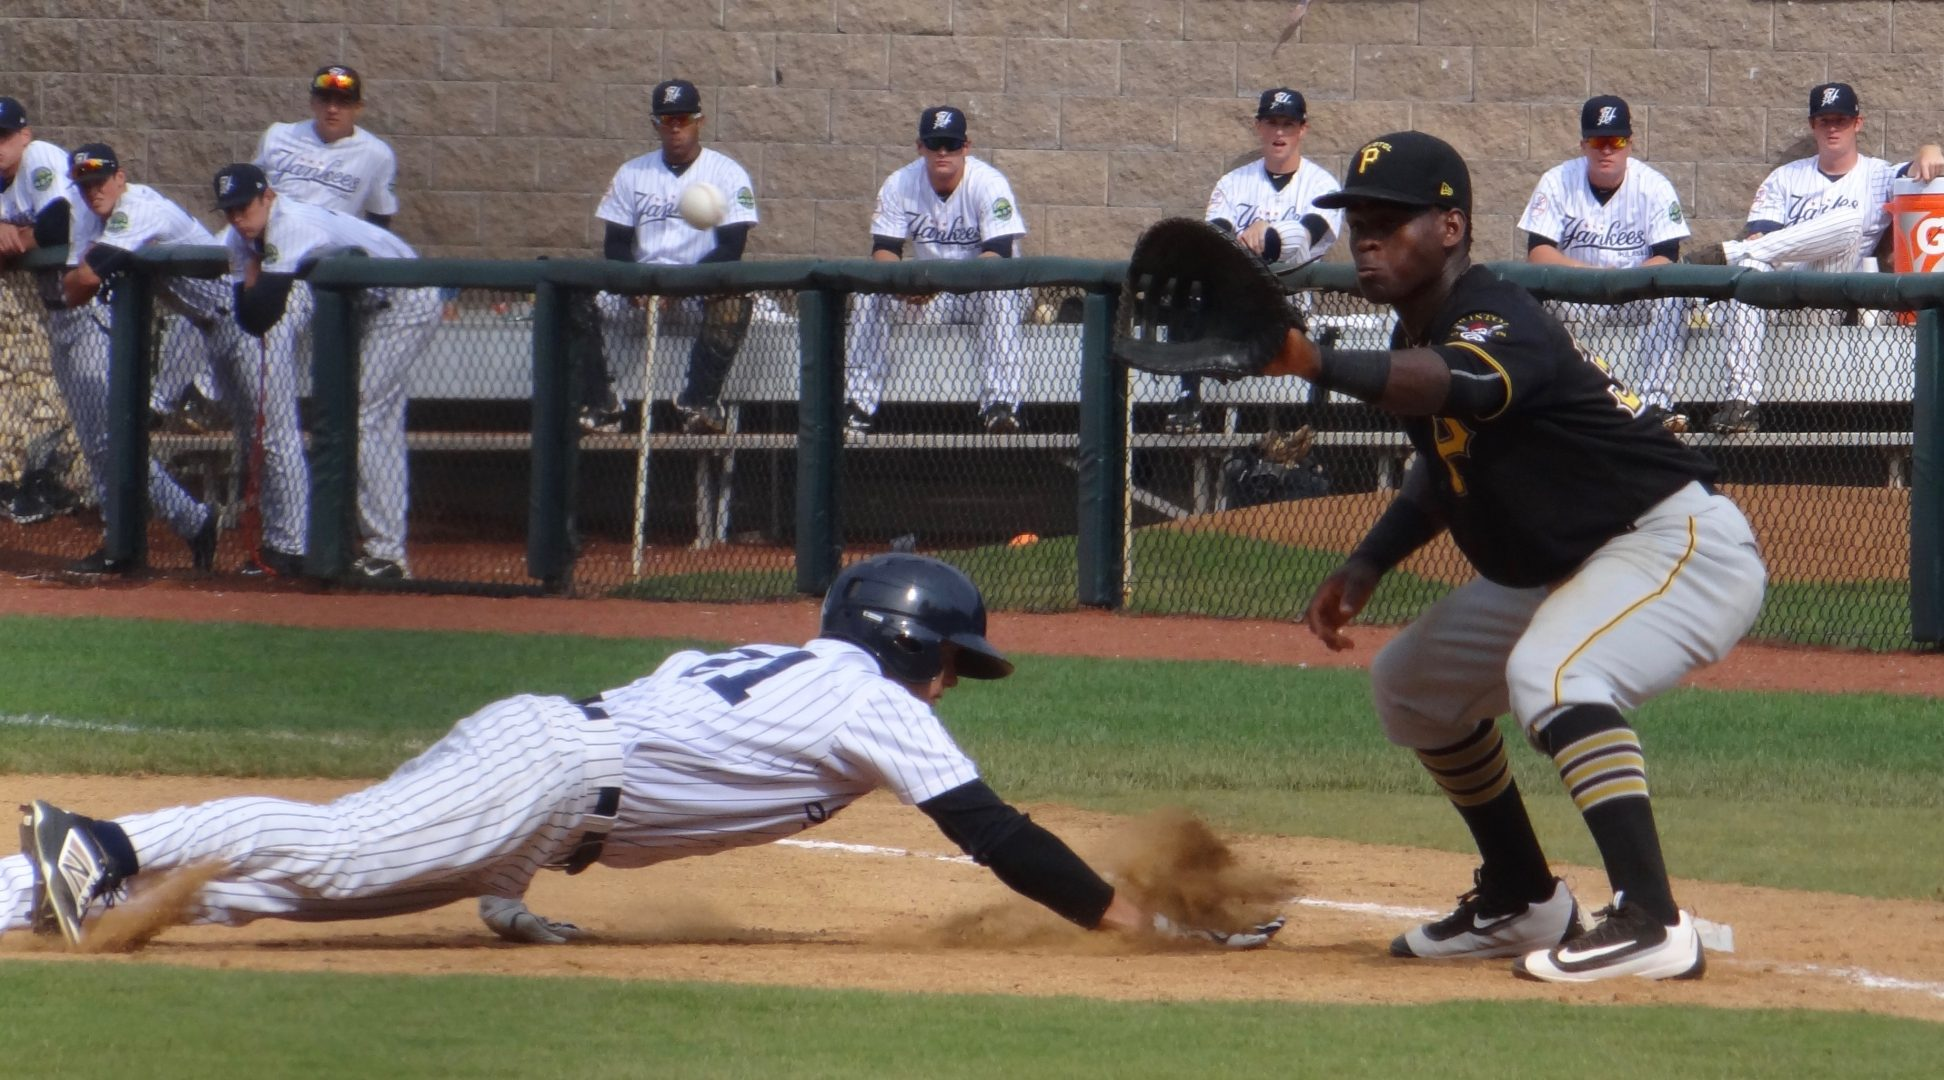 Ben Ruta diving back to first base. (Jarah Wright)